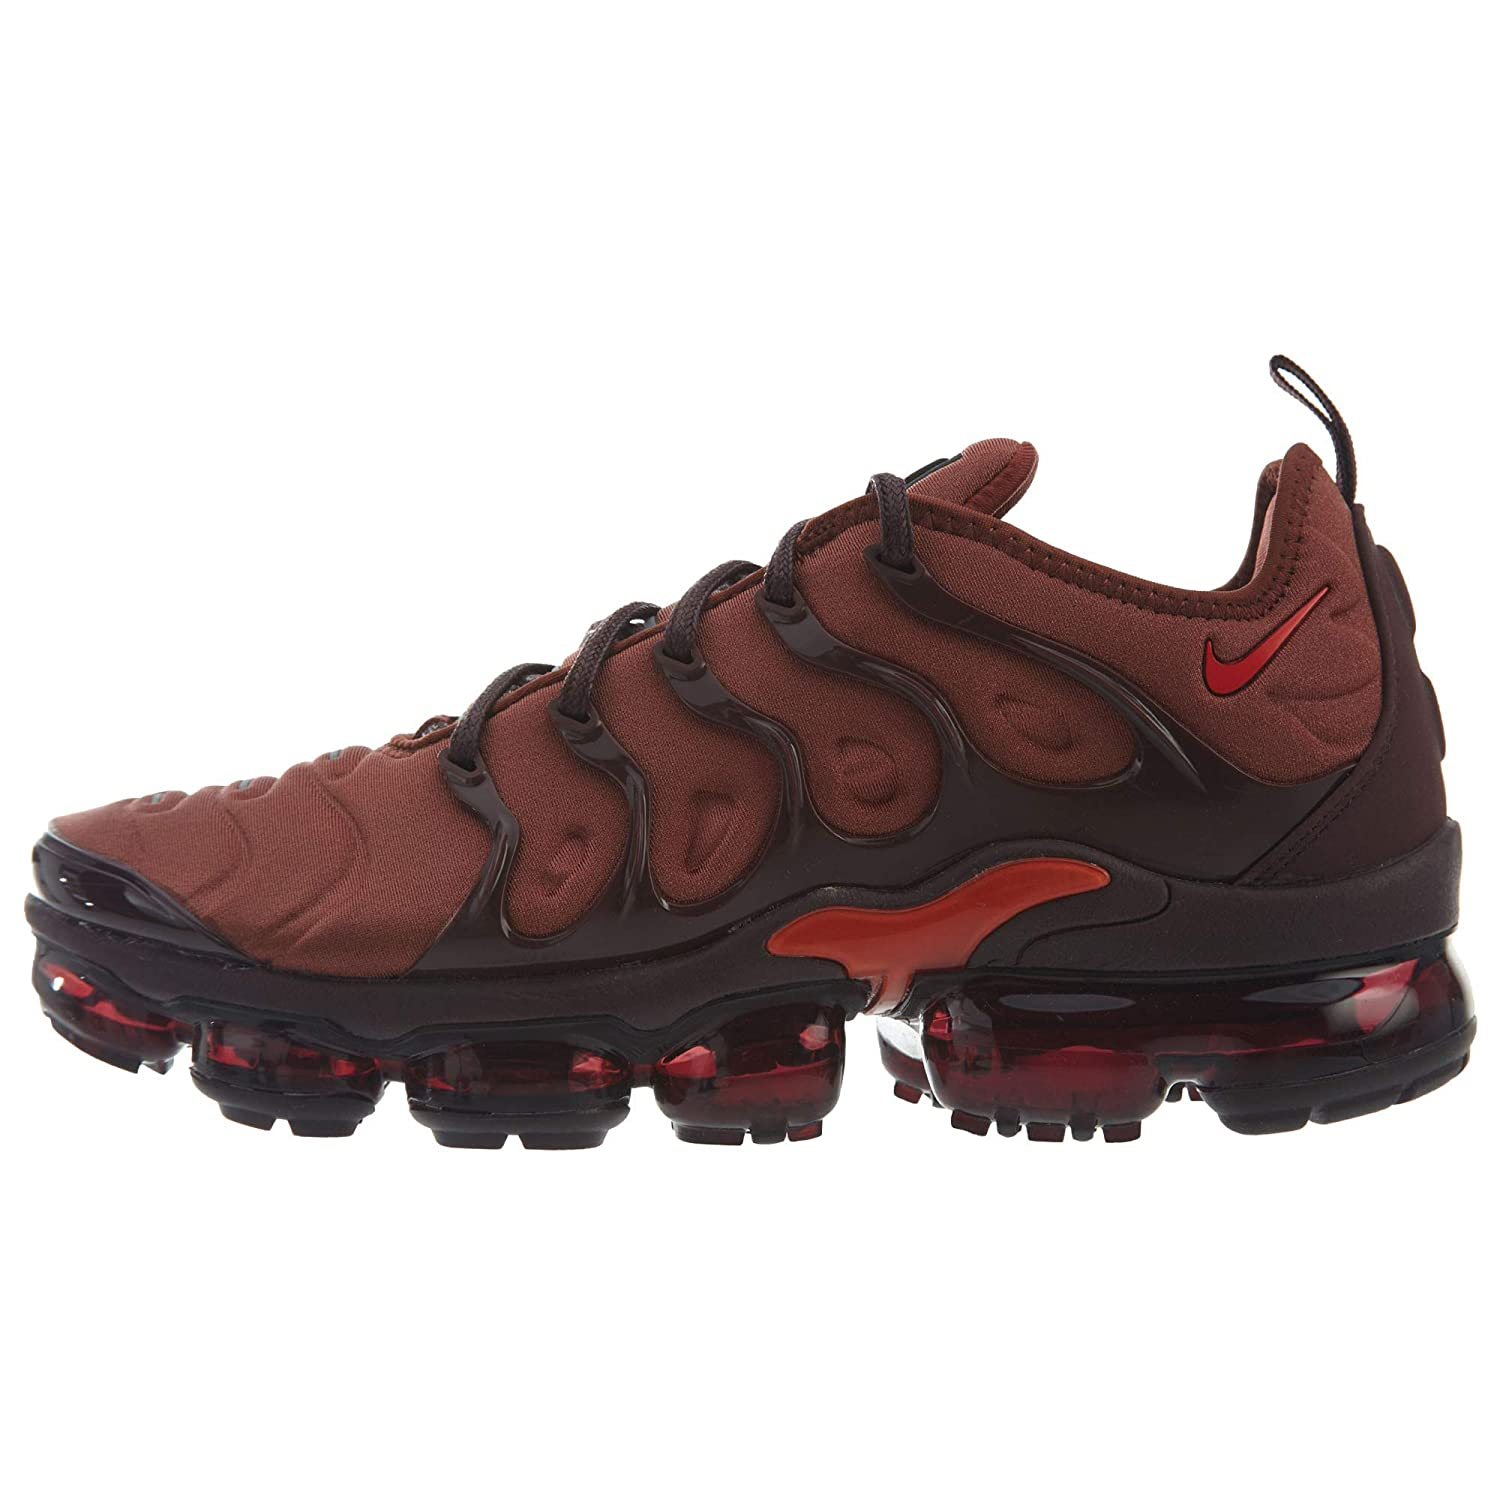 lowest price a8664 30559 NIKE W Air Vapormax Plus, Chaussures de Fitness Femme